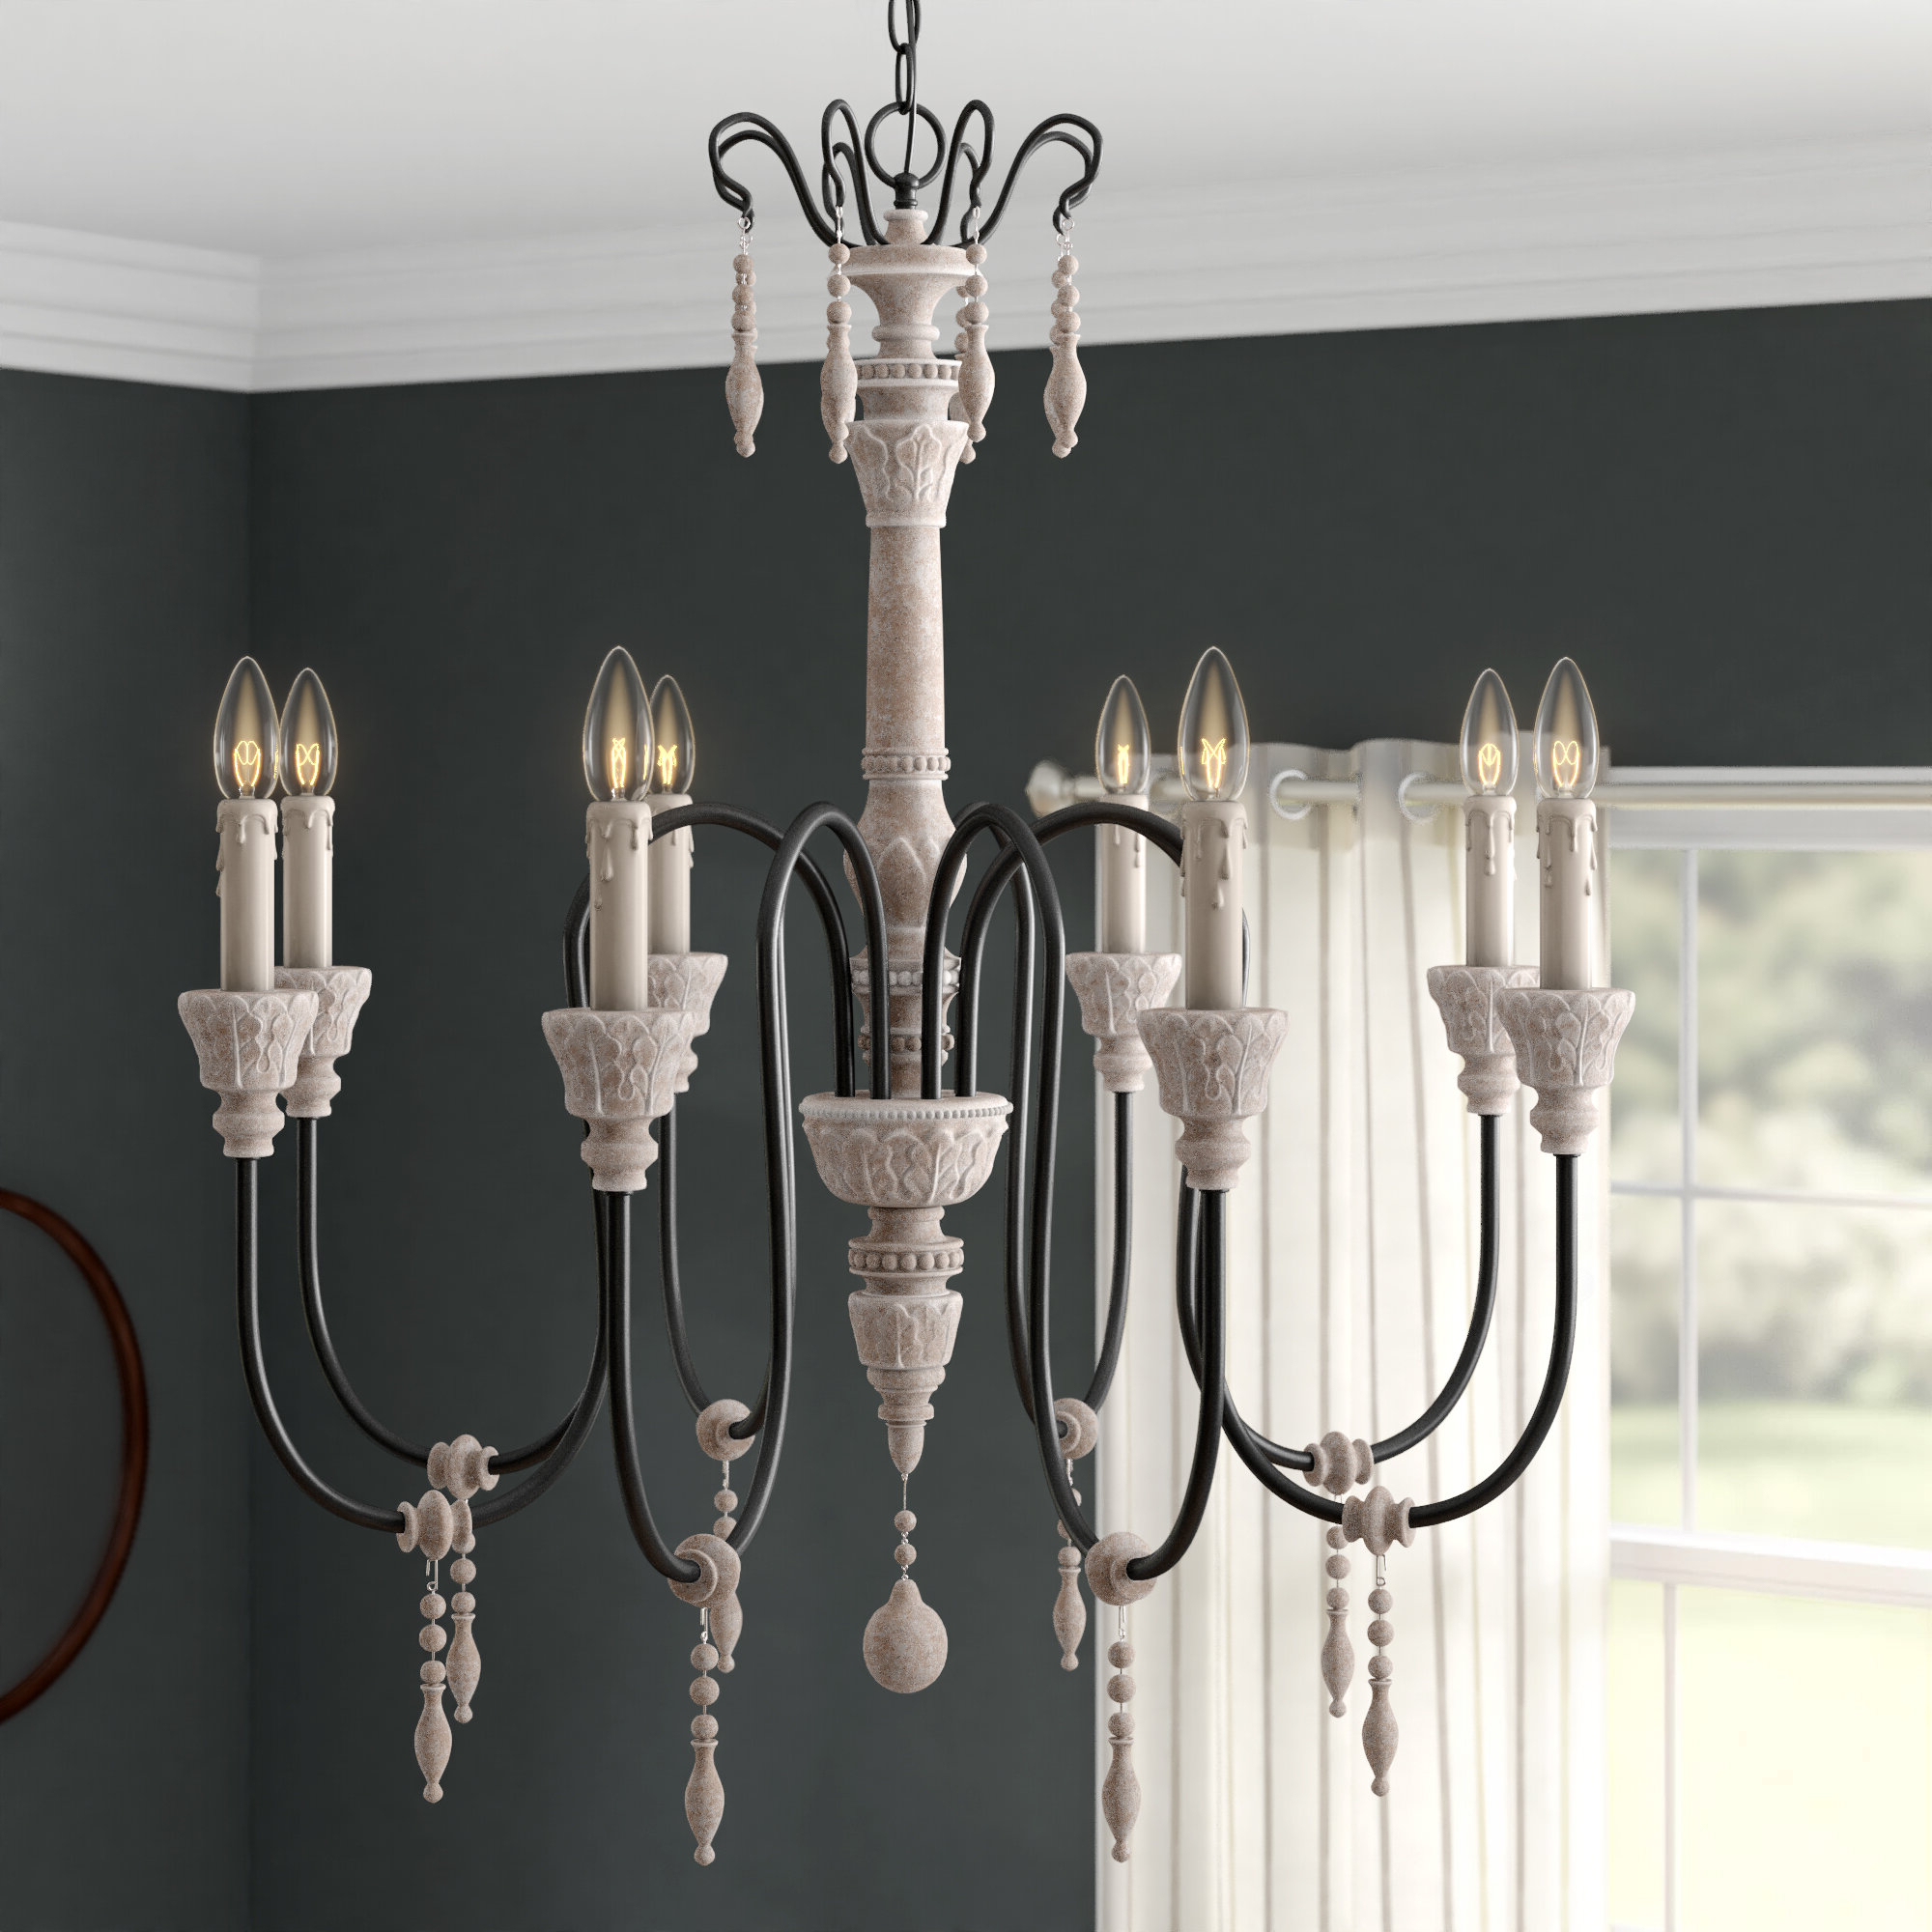 Ailsa 8 Light Candle Style Chandelier Pertaining To Recent Armande Candle Style Chandeliers (View 8 of 25)